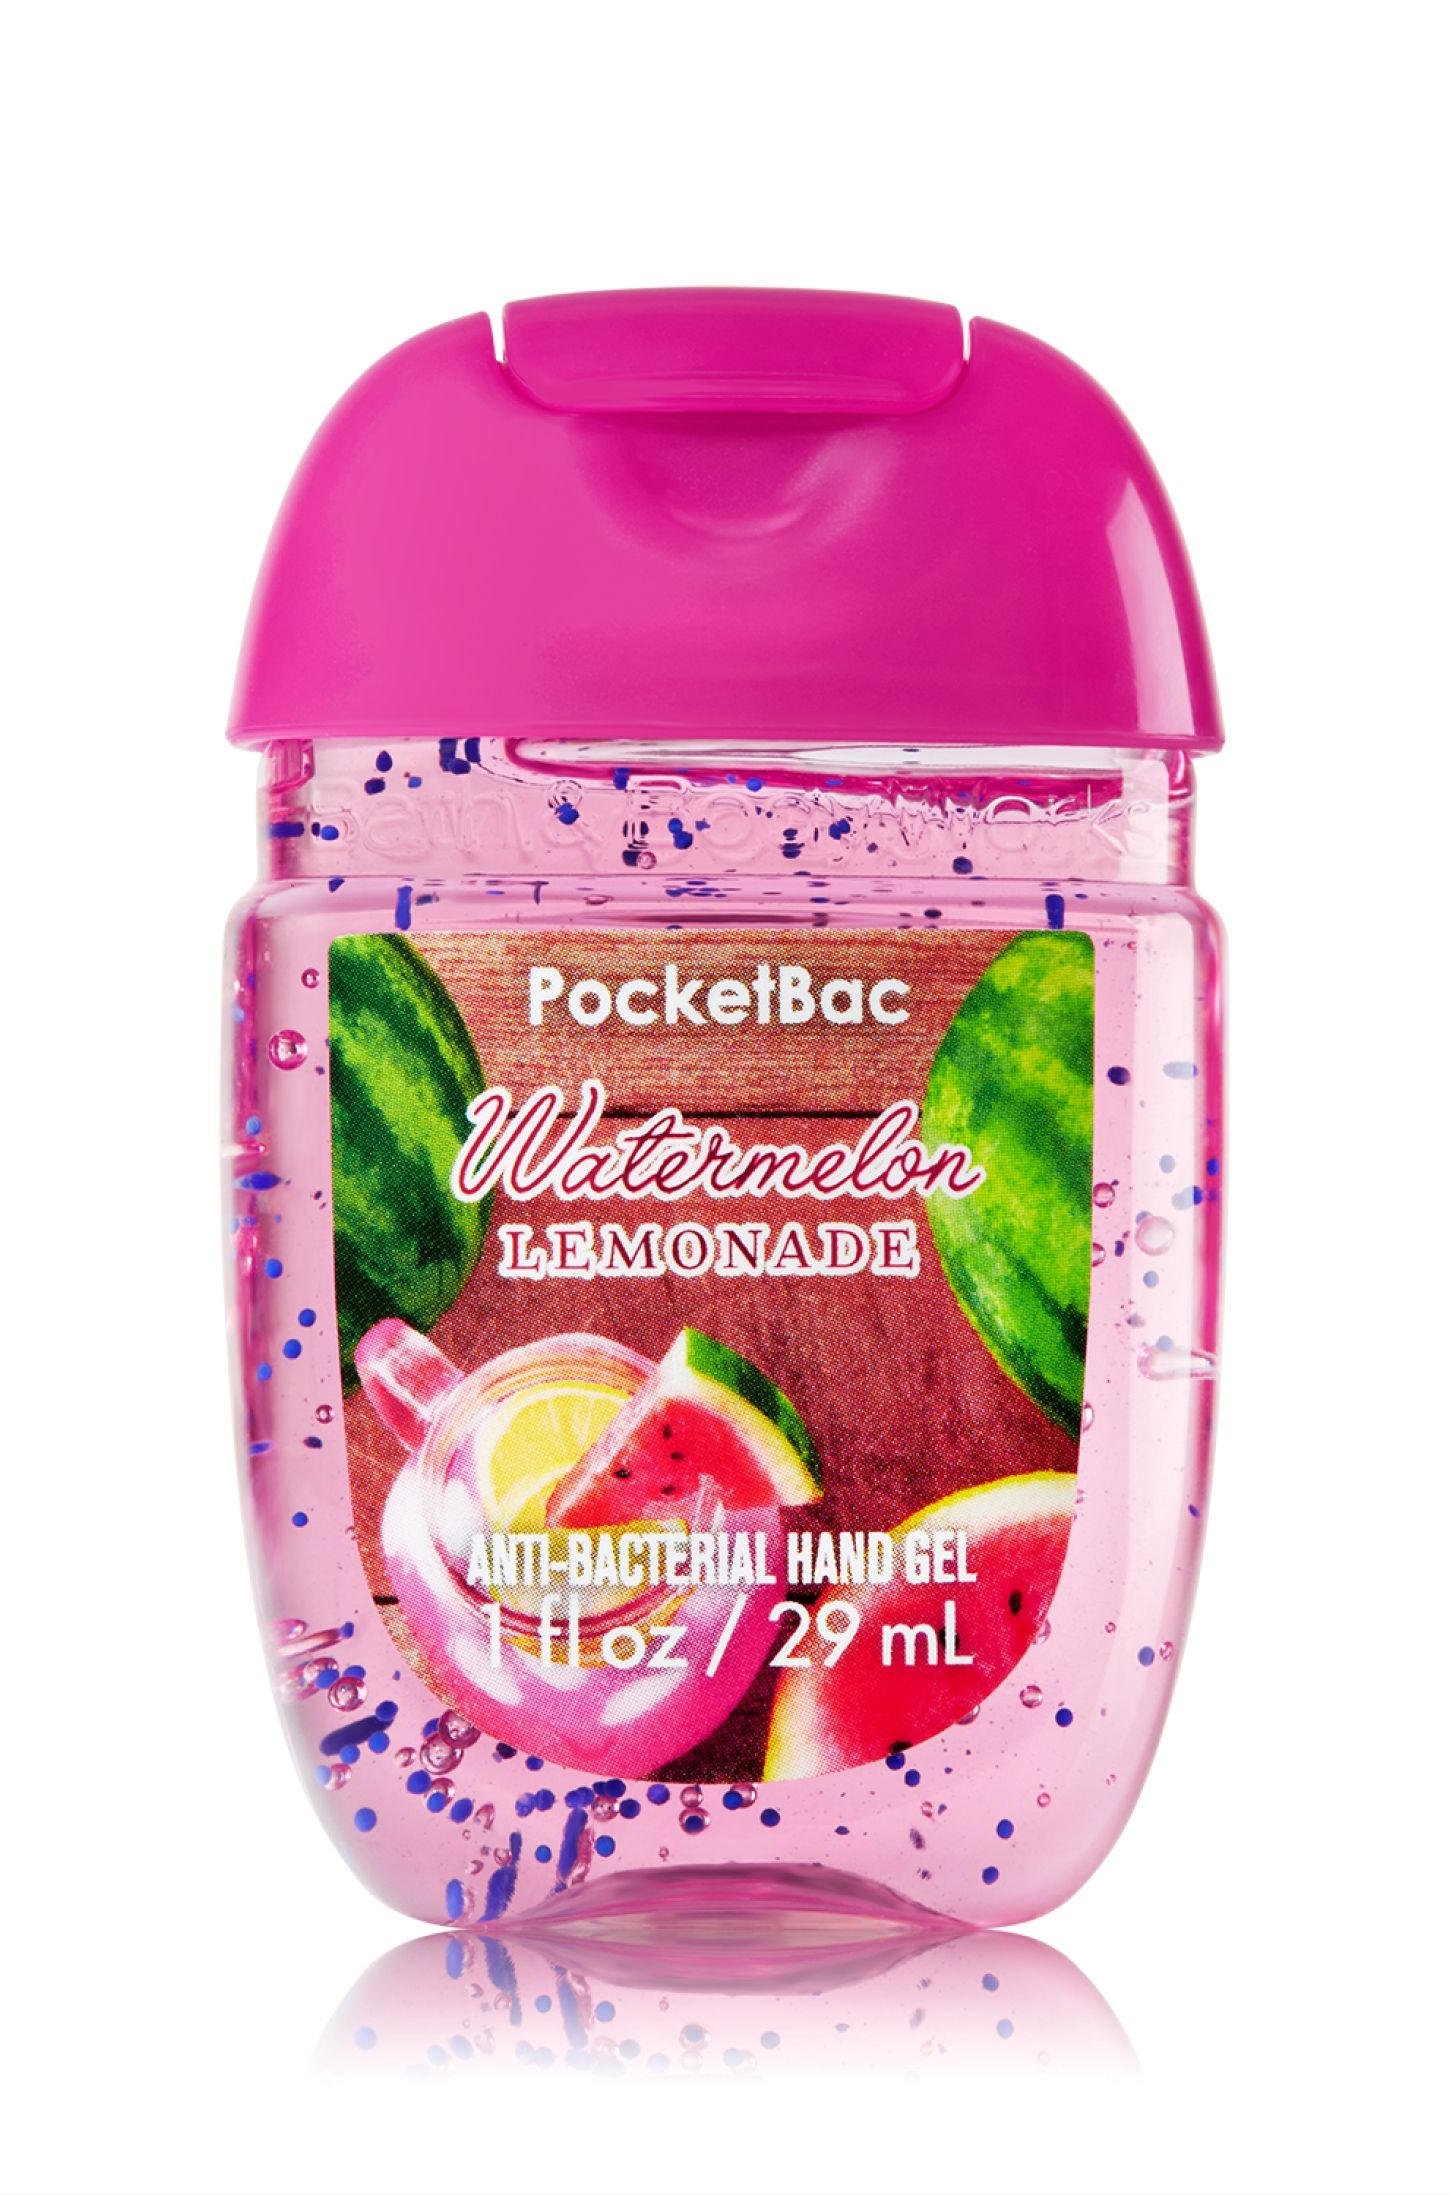 Watermelon Lemonade Pocketbac Sanitizing Hand Gel Soap Sanitizer